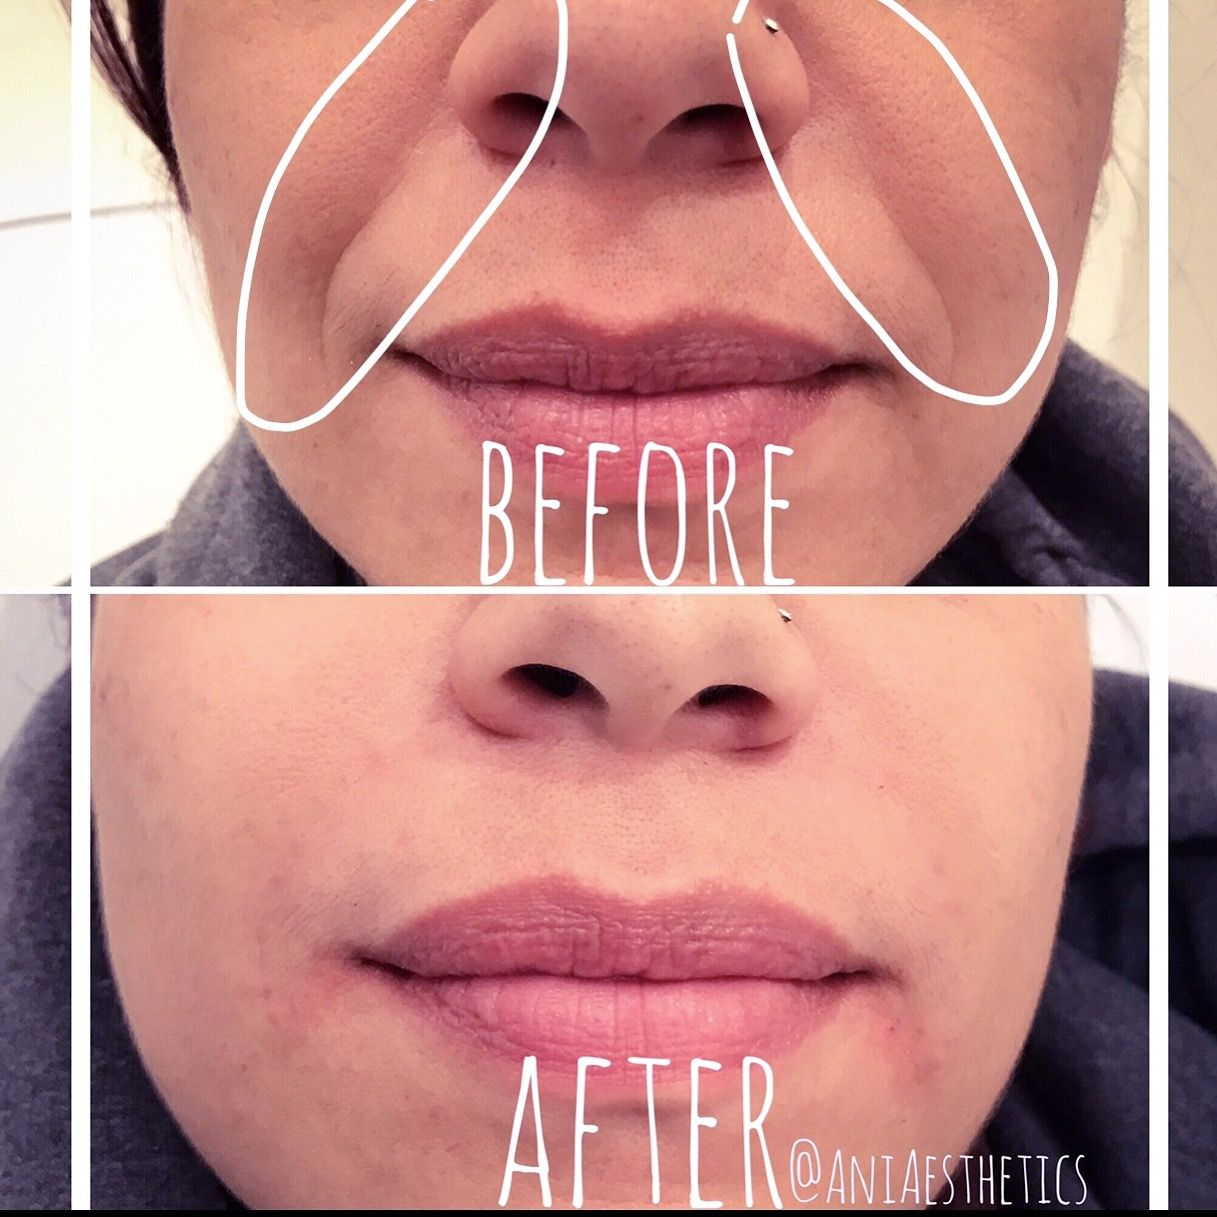 Before and after dermal fillers to get rid of smile lines | health